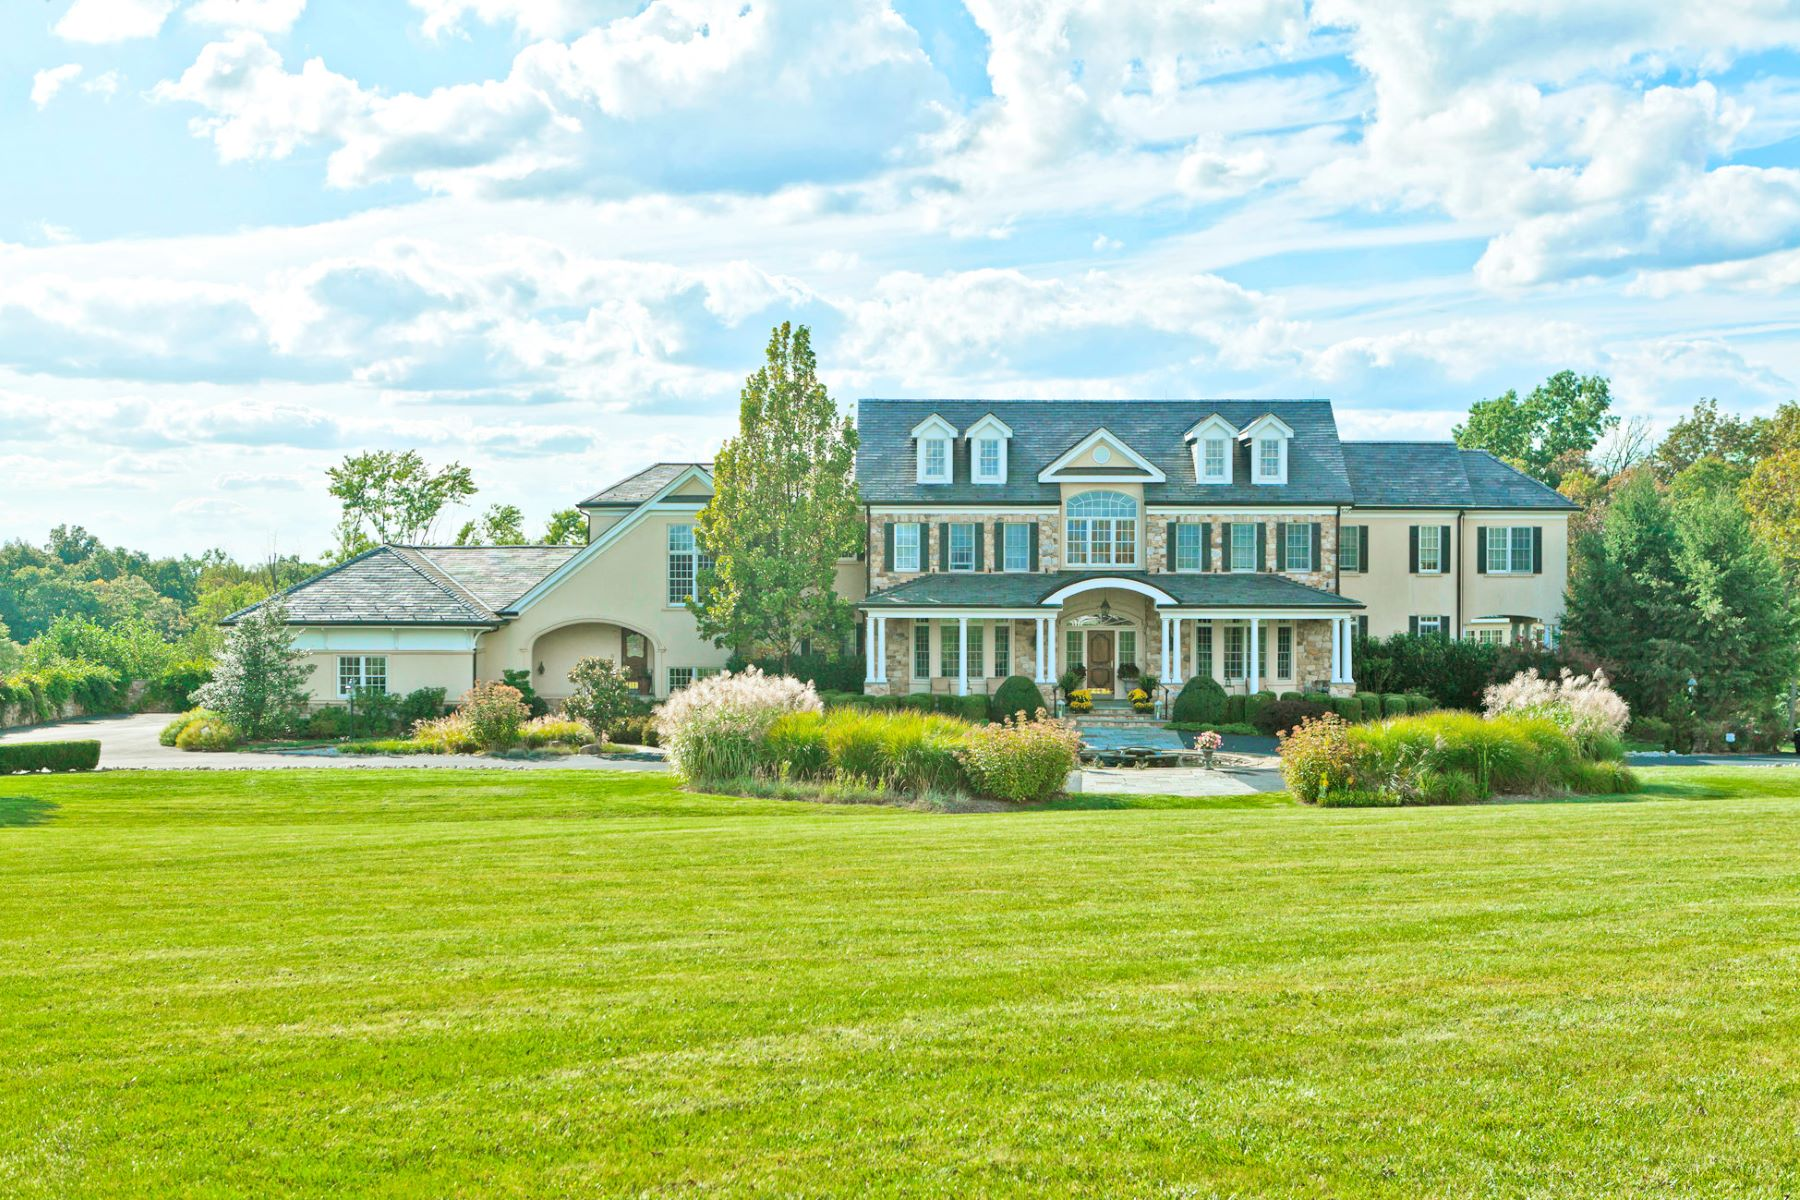 Villa per Vendita alle ore The Ultimate Wall Street Getaway 131 - 133 Harbourton Woodsville Road Hopewell Township, Lambertville, New Jersey 08530 Stati UnitiIn/In giro: Hopewell Township